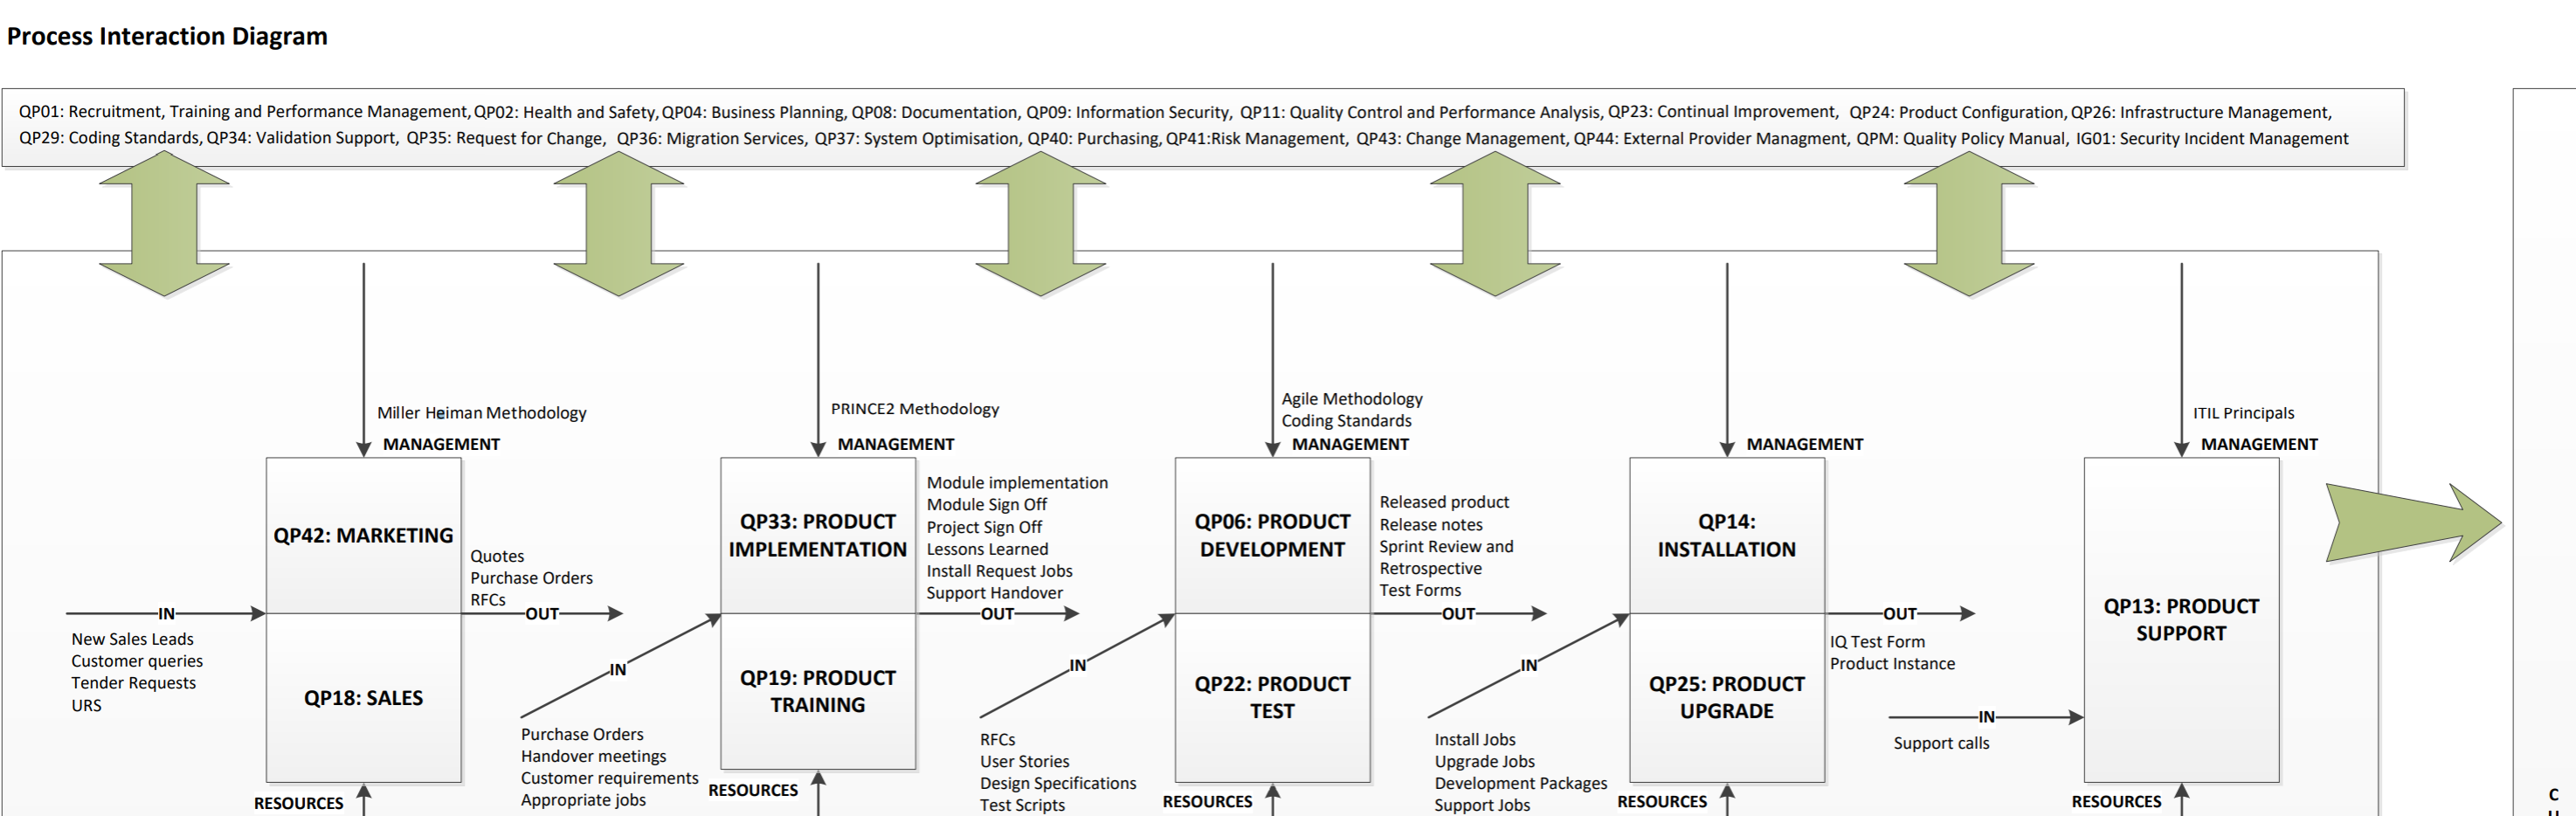 Qualsys process interaction map.png